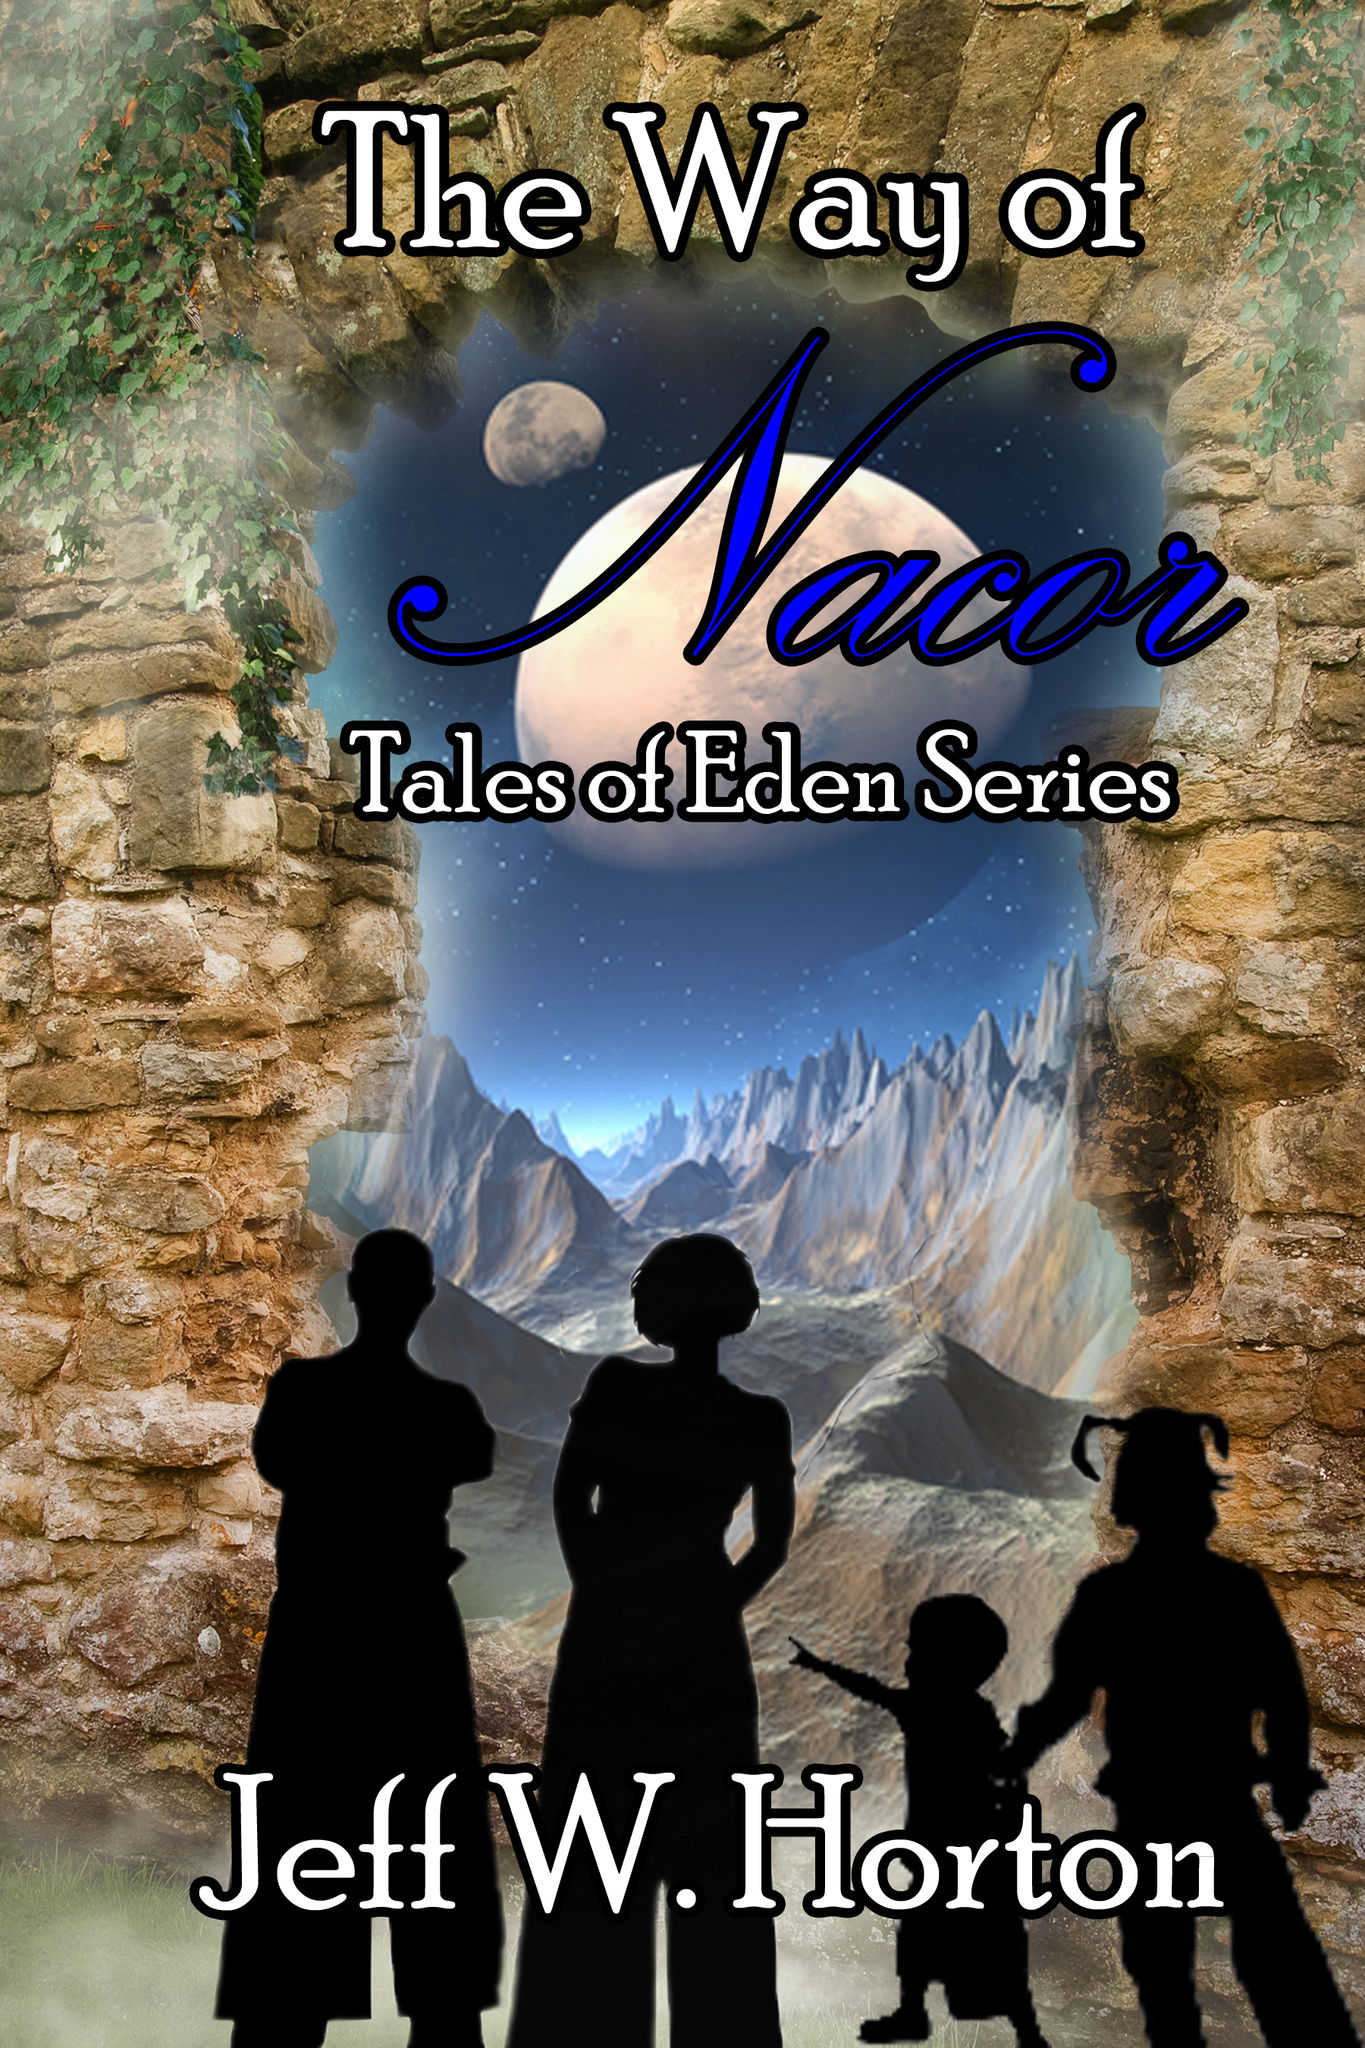 THE WAY OF NACOR: Tales of Eden